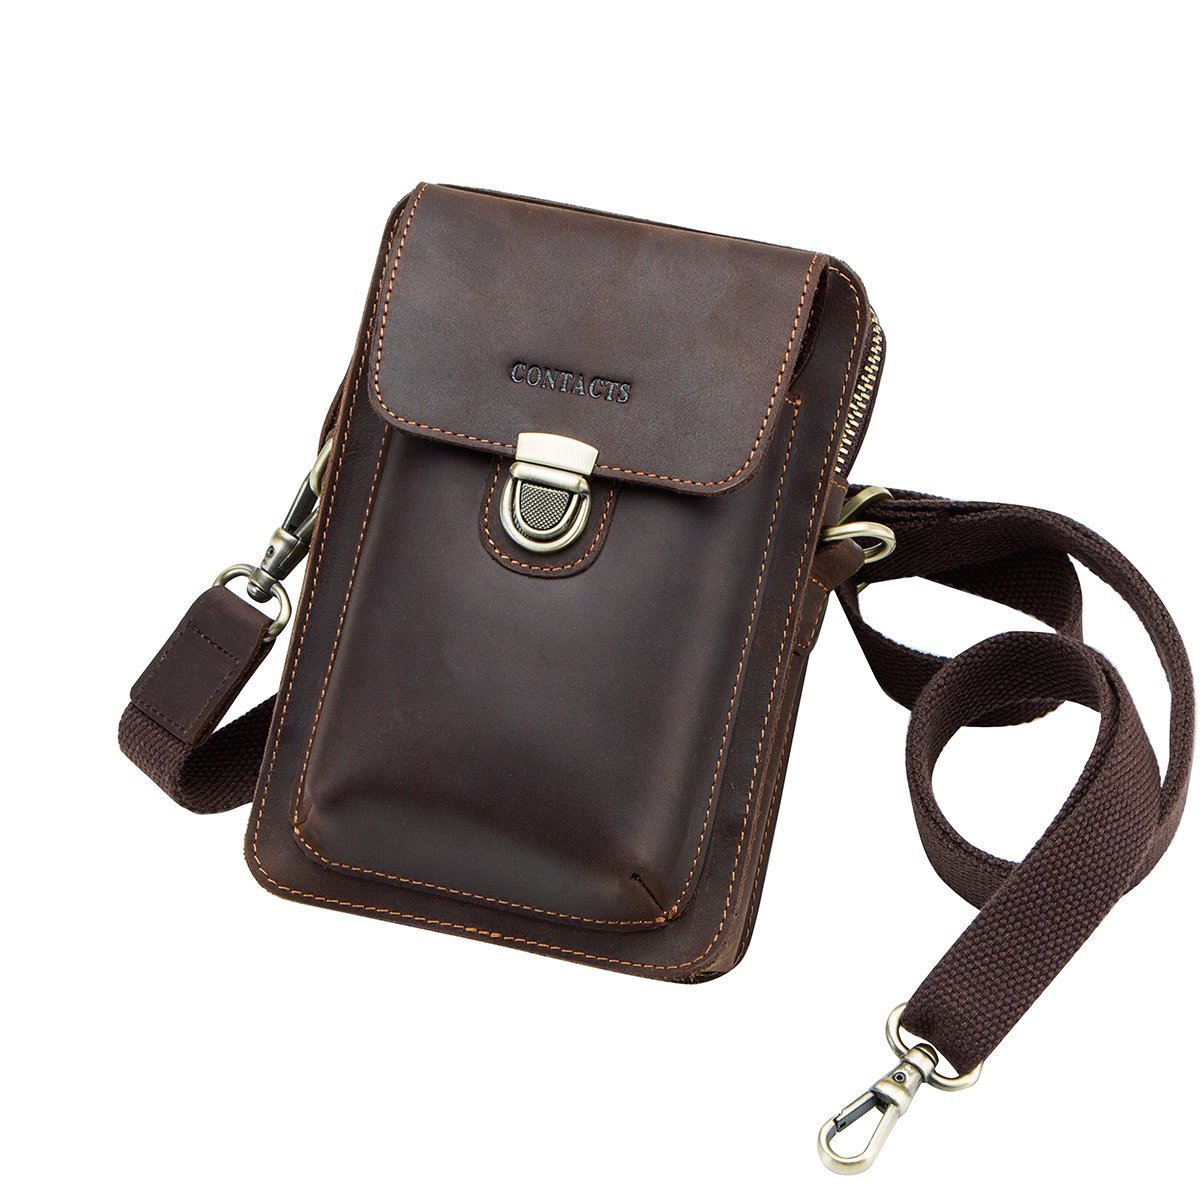 Contacts Genuine Leather Man Small Messenger Bag Belt Bag Waist Pouch Purse for Mobile Phone Dark Coffee